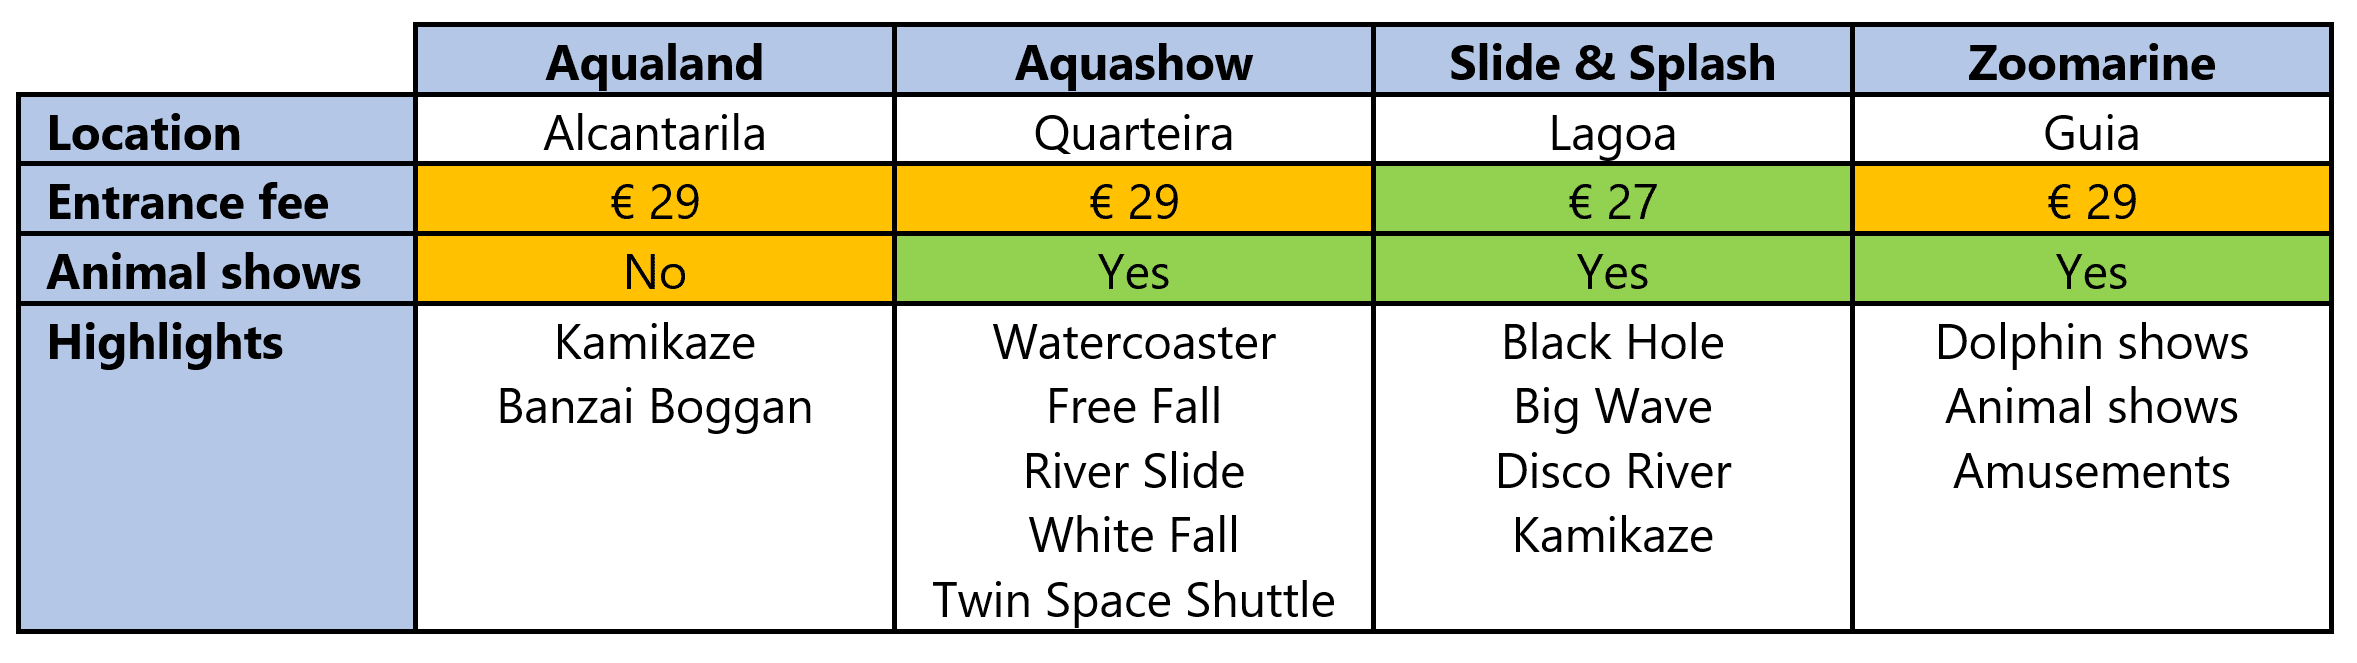 Comparing water parks in the Algarve